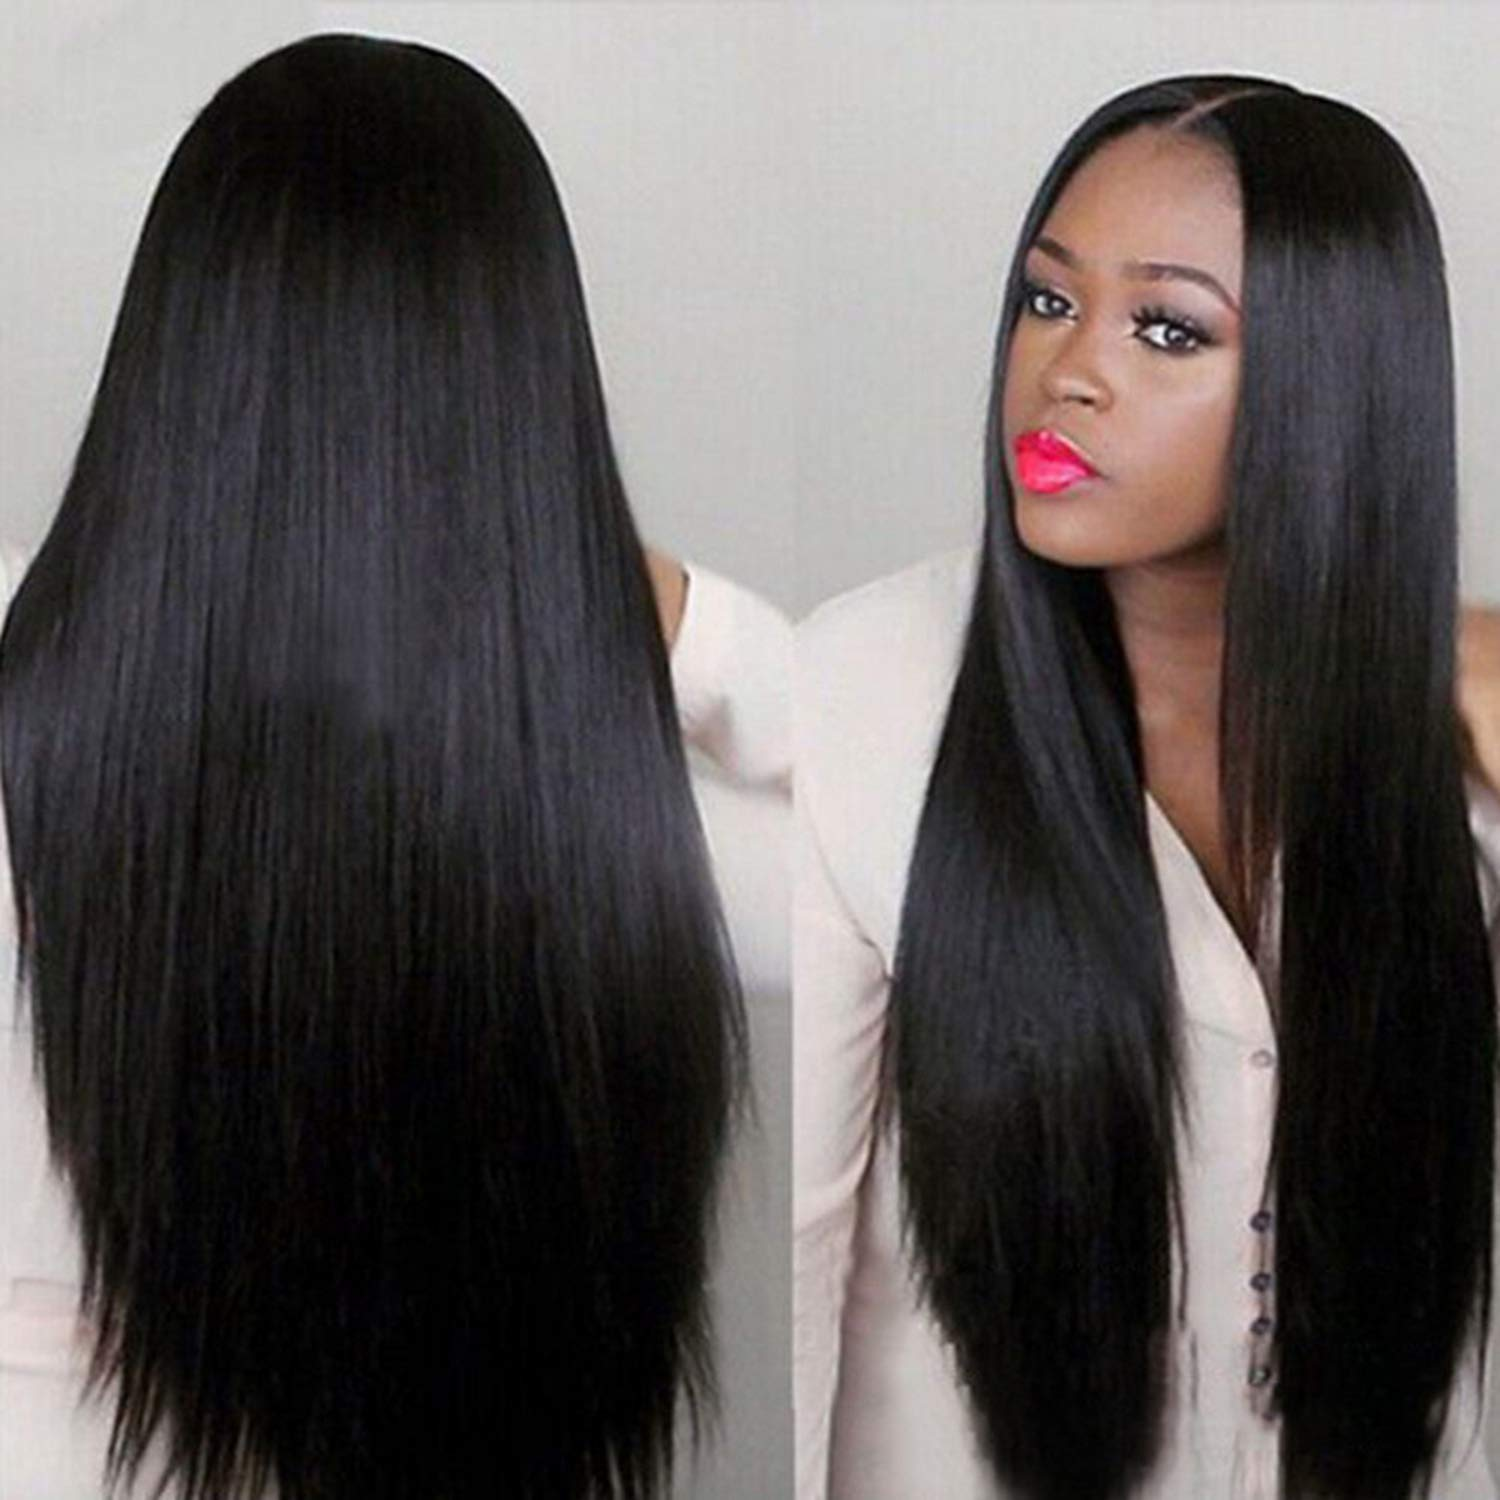 Straight Lace Front Wig Bob Wig Lace Front  Wigs  30 Inch Virgin Hair Wigs Bone Straight  Wig 4